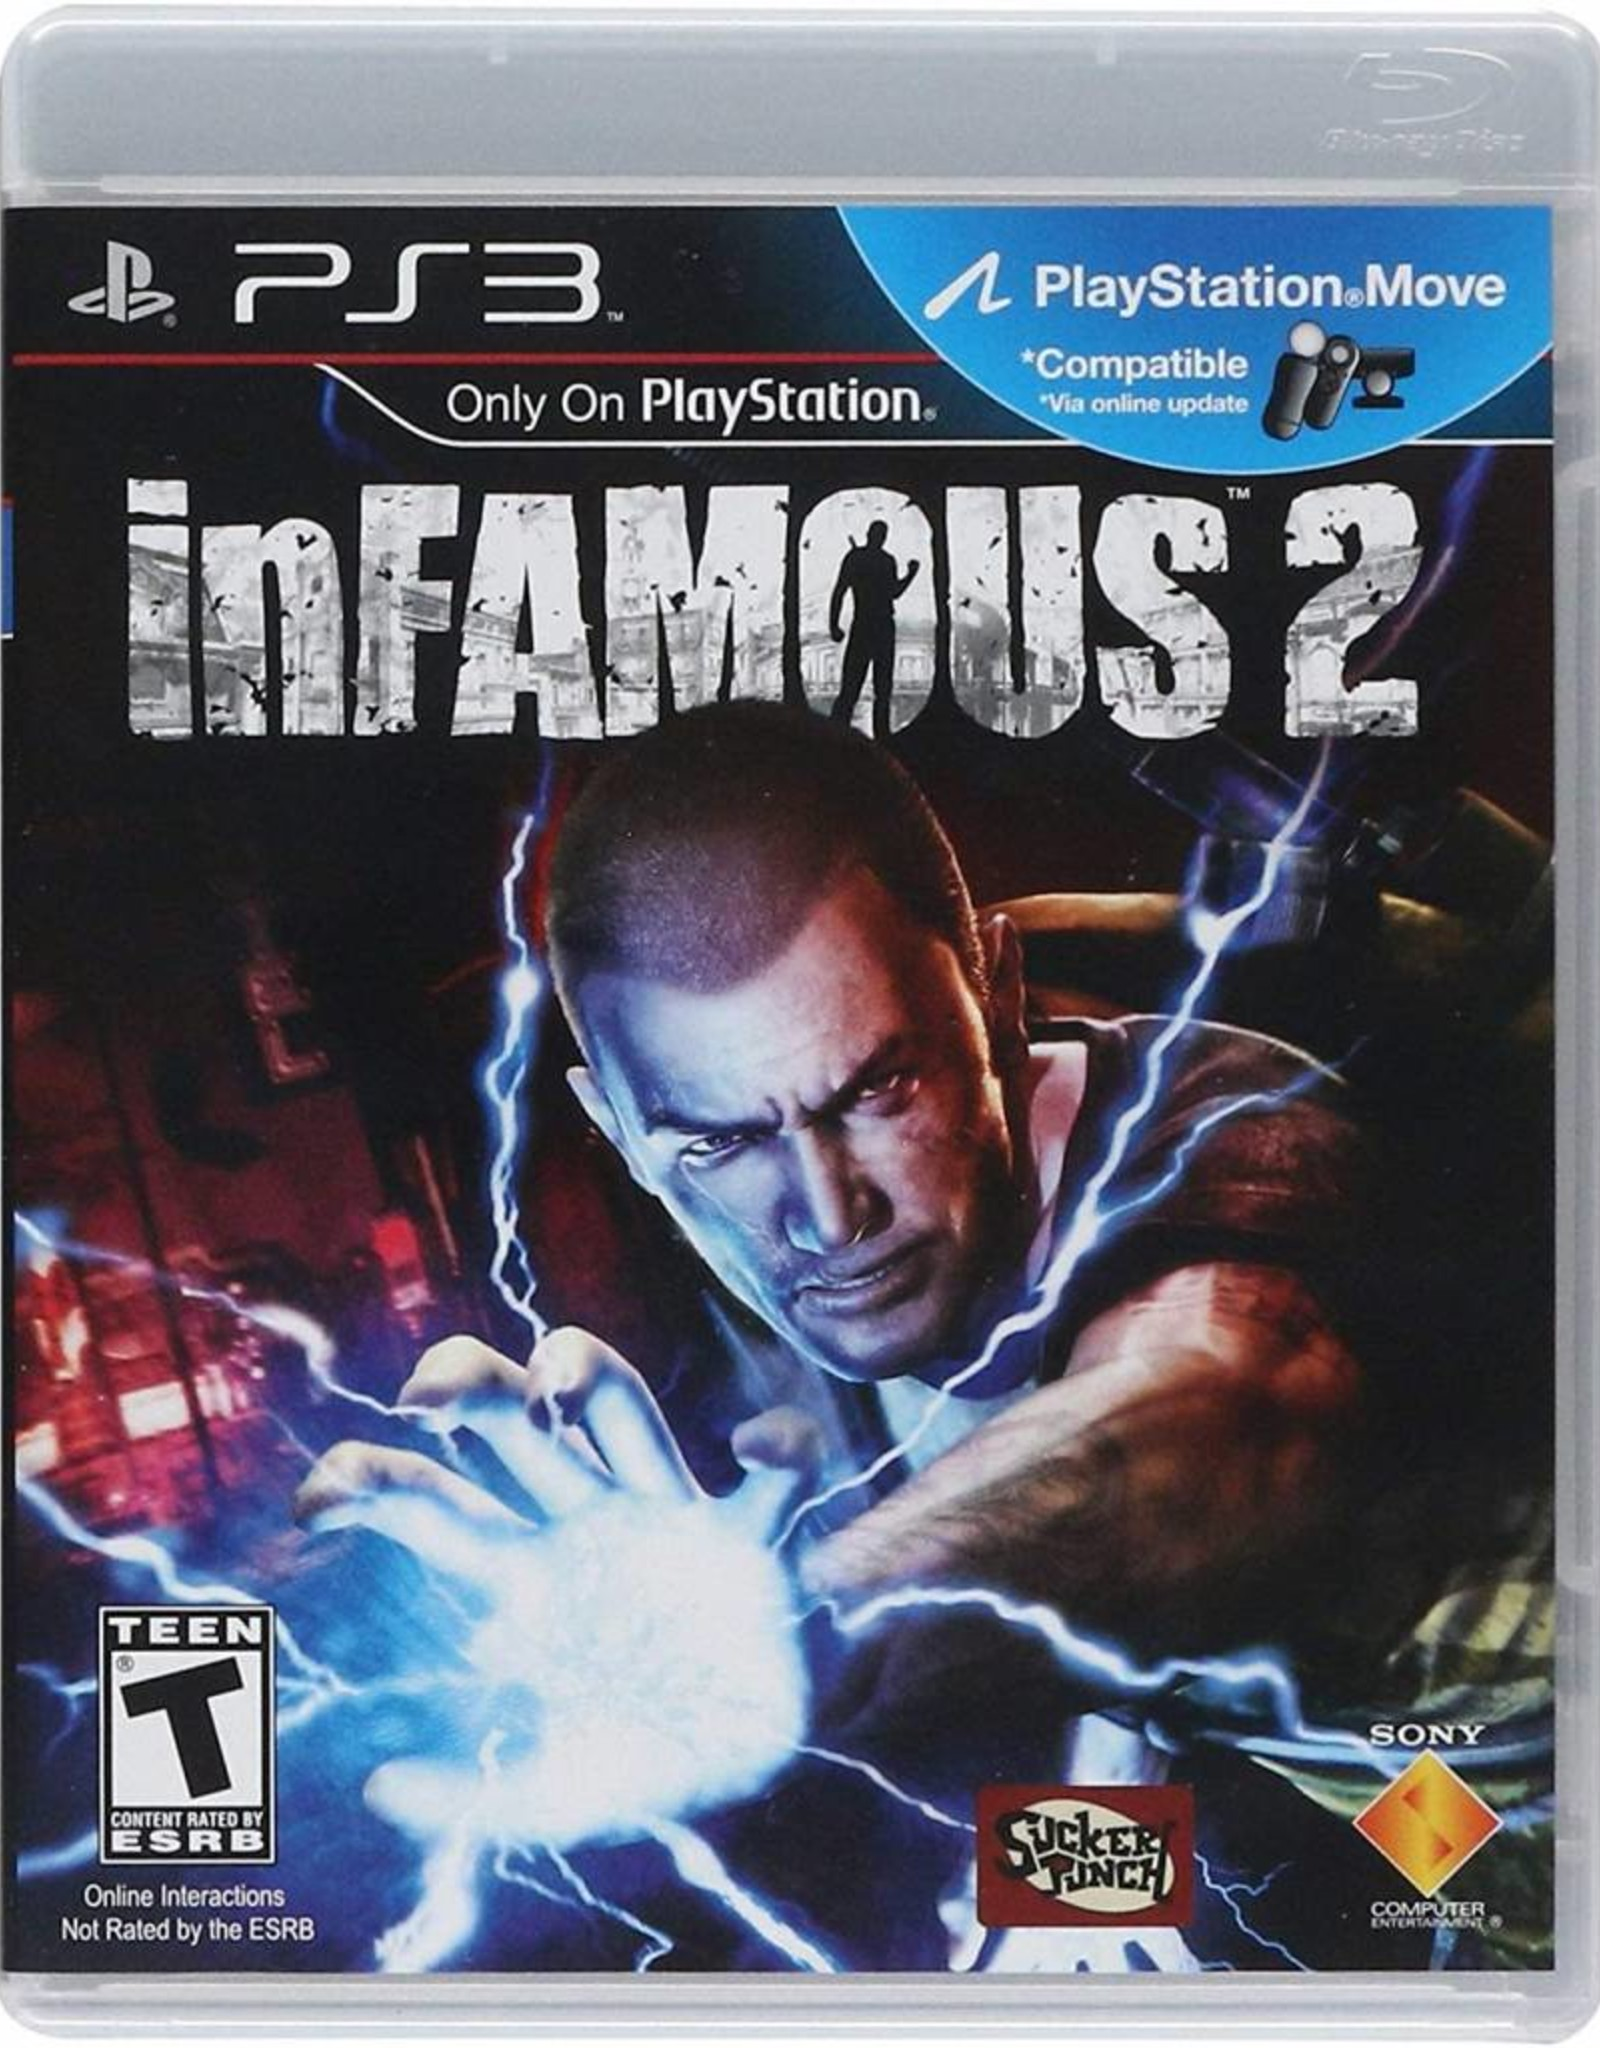 inFamous 2 (Sleeve Case) - PS3 PrePlayed